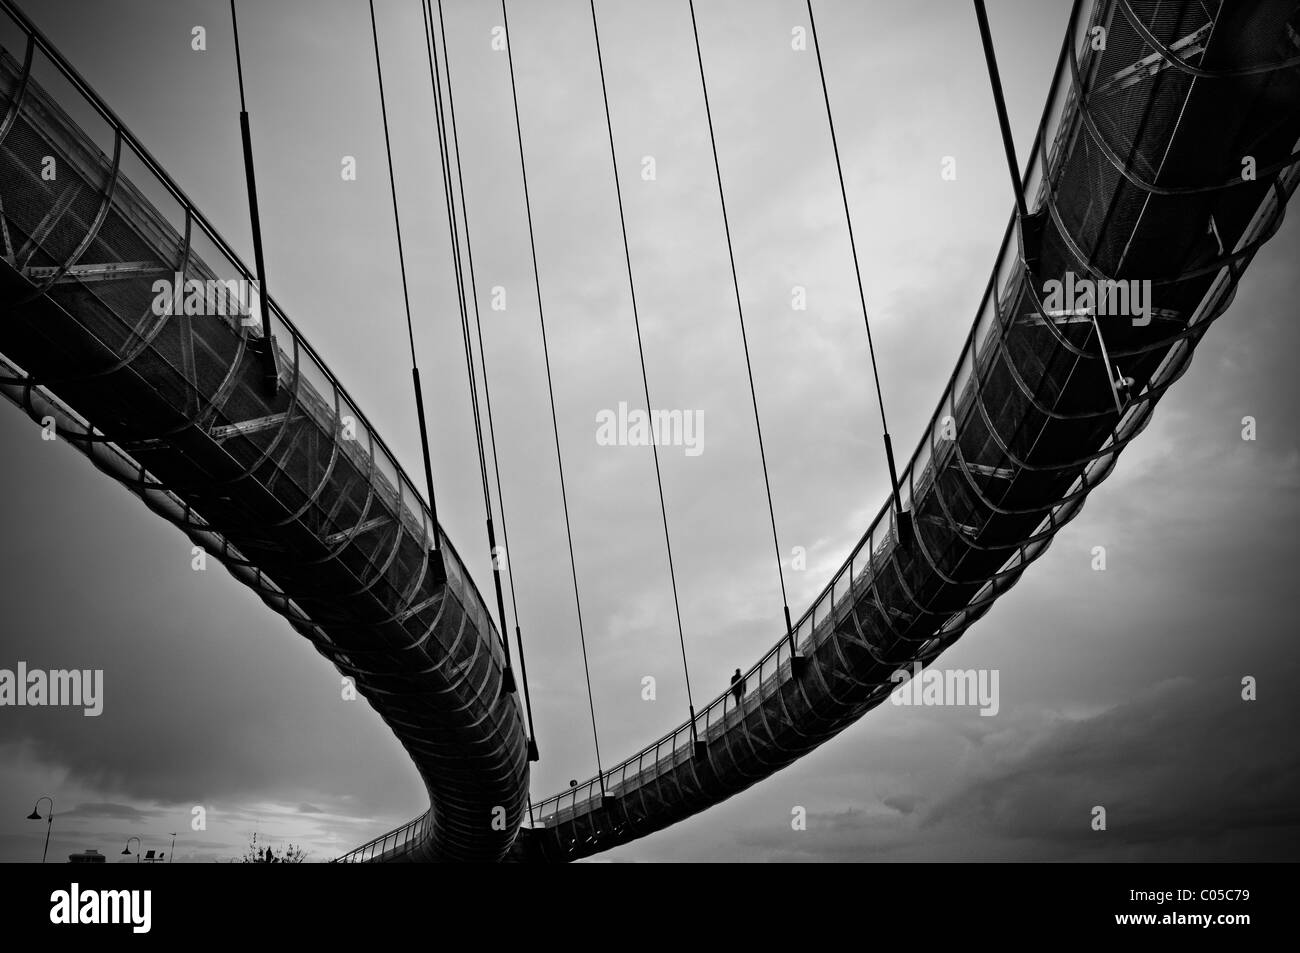 Cable bridge - Stock Image